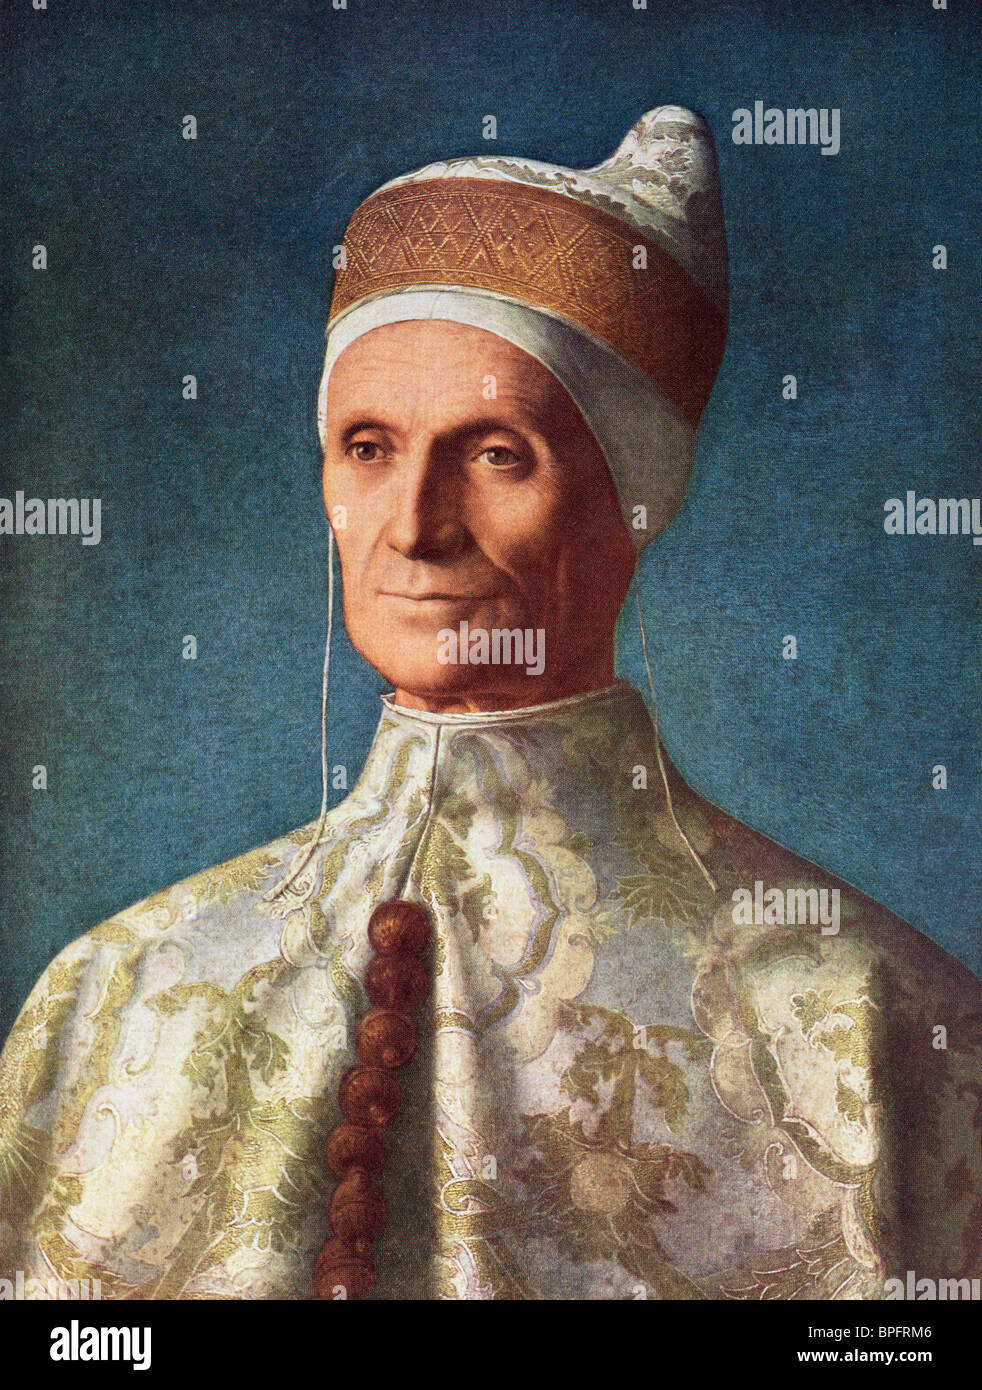 Leonardo Loredano, Doge of the Republic of Venice, 1436 - 1521 by Giovanni Bellini. - Stock Image